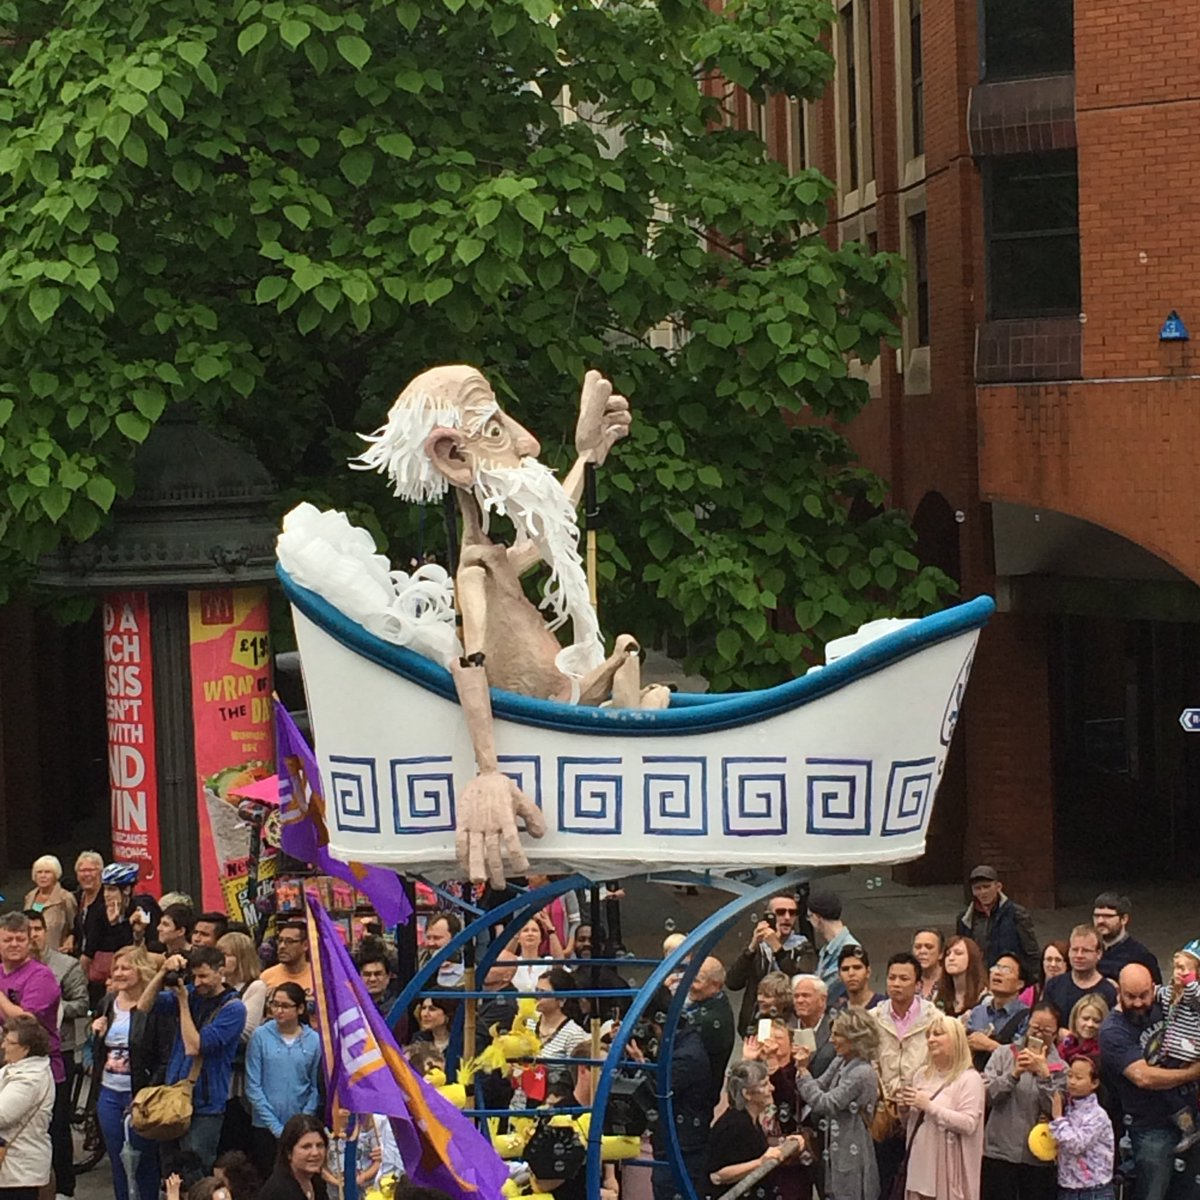 Loving the eclectic display of parades celebrating Manchester's Eureka moments #McrDay16 https://t.co/nEh1ulcoAG